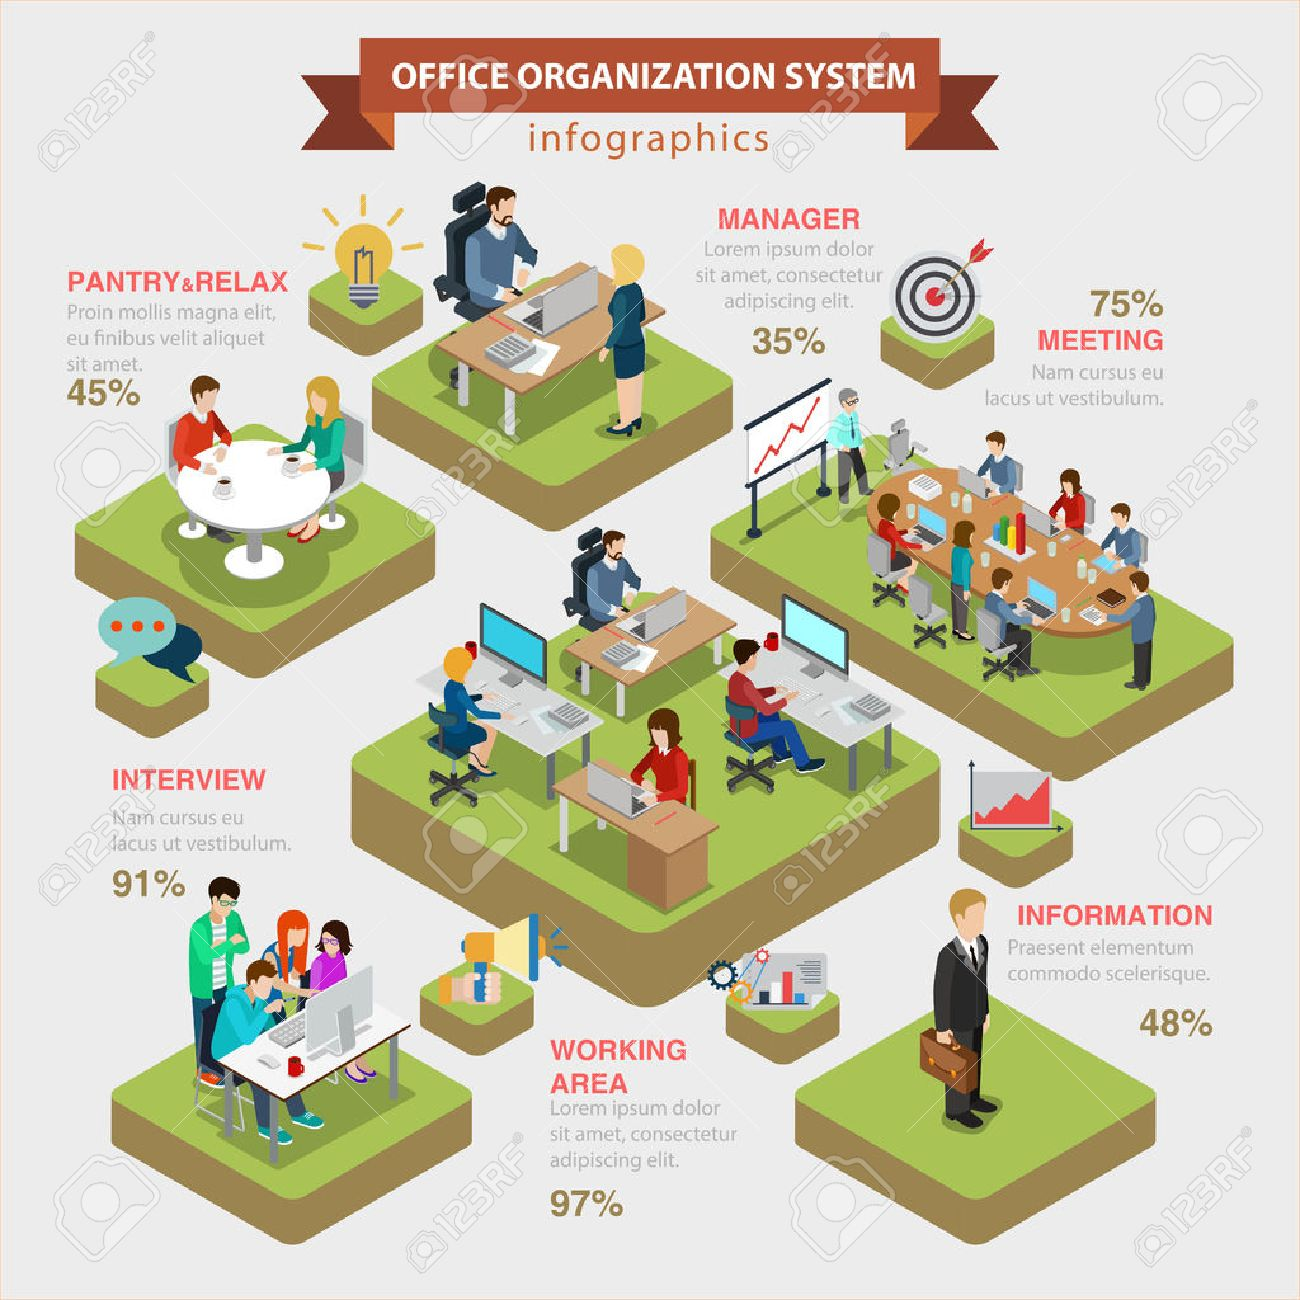 Office organization system structure flat 3d isometric style thematic infographics concept. Manager meeting information interview working area info graphic. Conceptual web site infographic collection. Stock Vector - 56909516